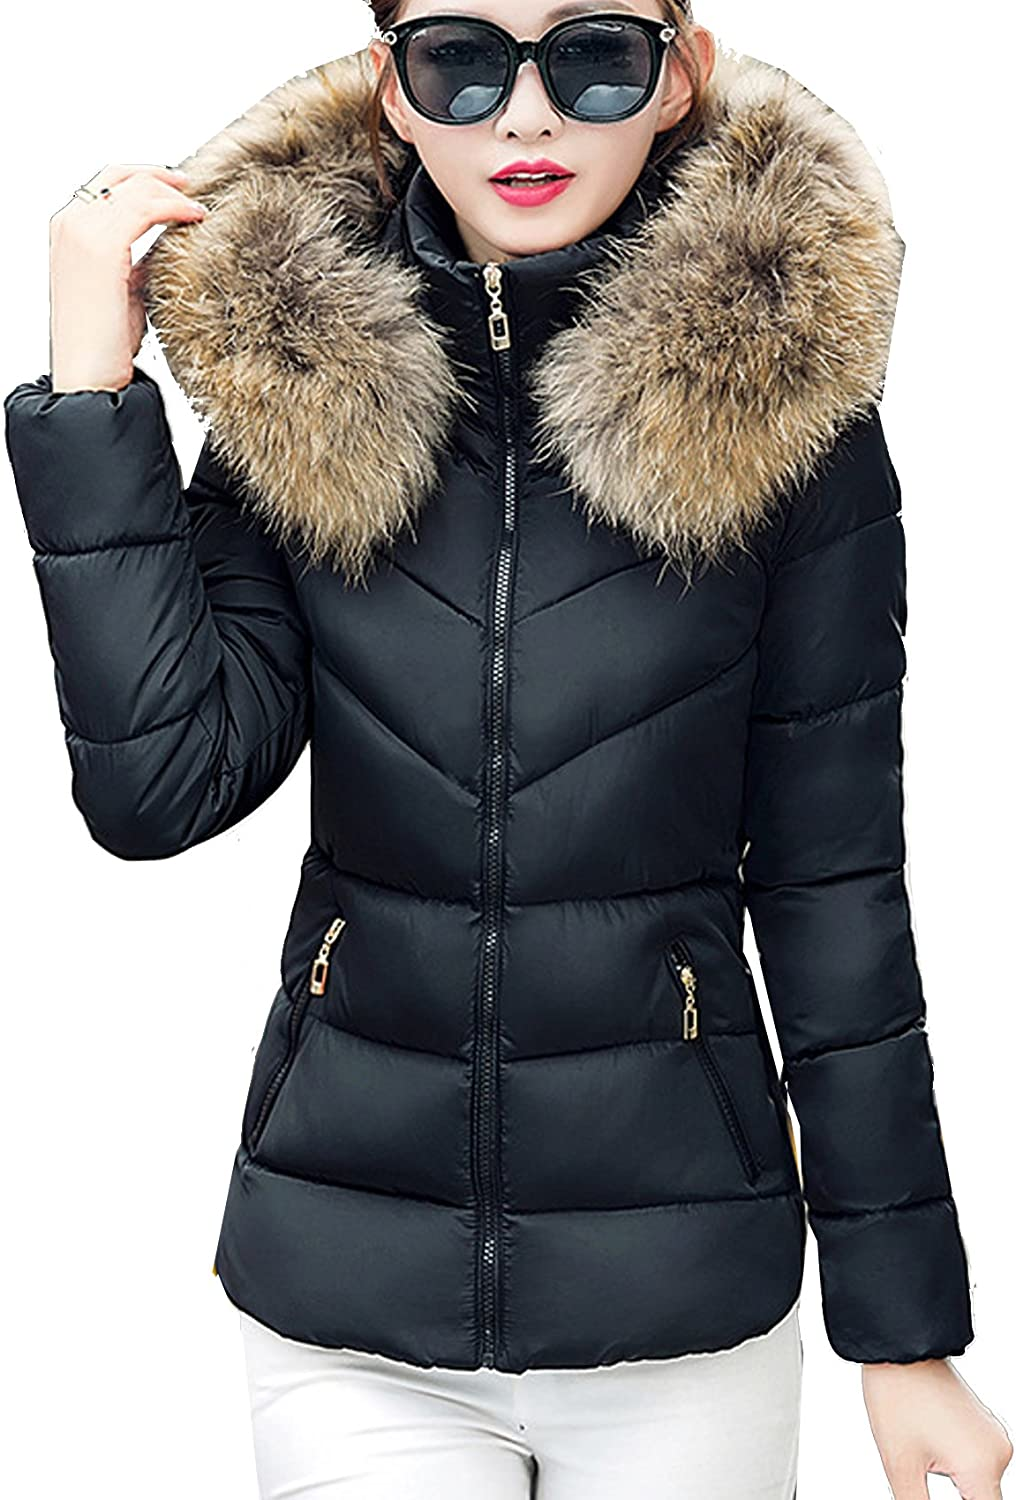 Fubotevic Men Thicken Winter Solid Color Faux Fur Hooded Down Quilted Jacket Coat Outwear